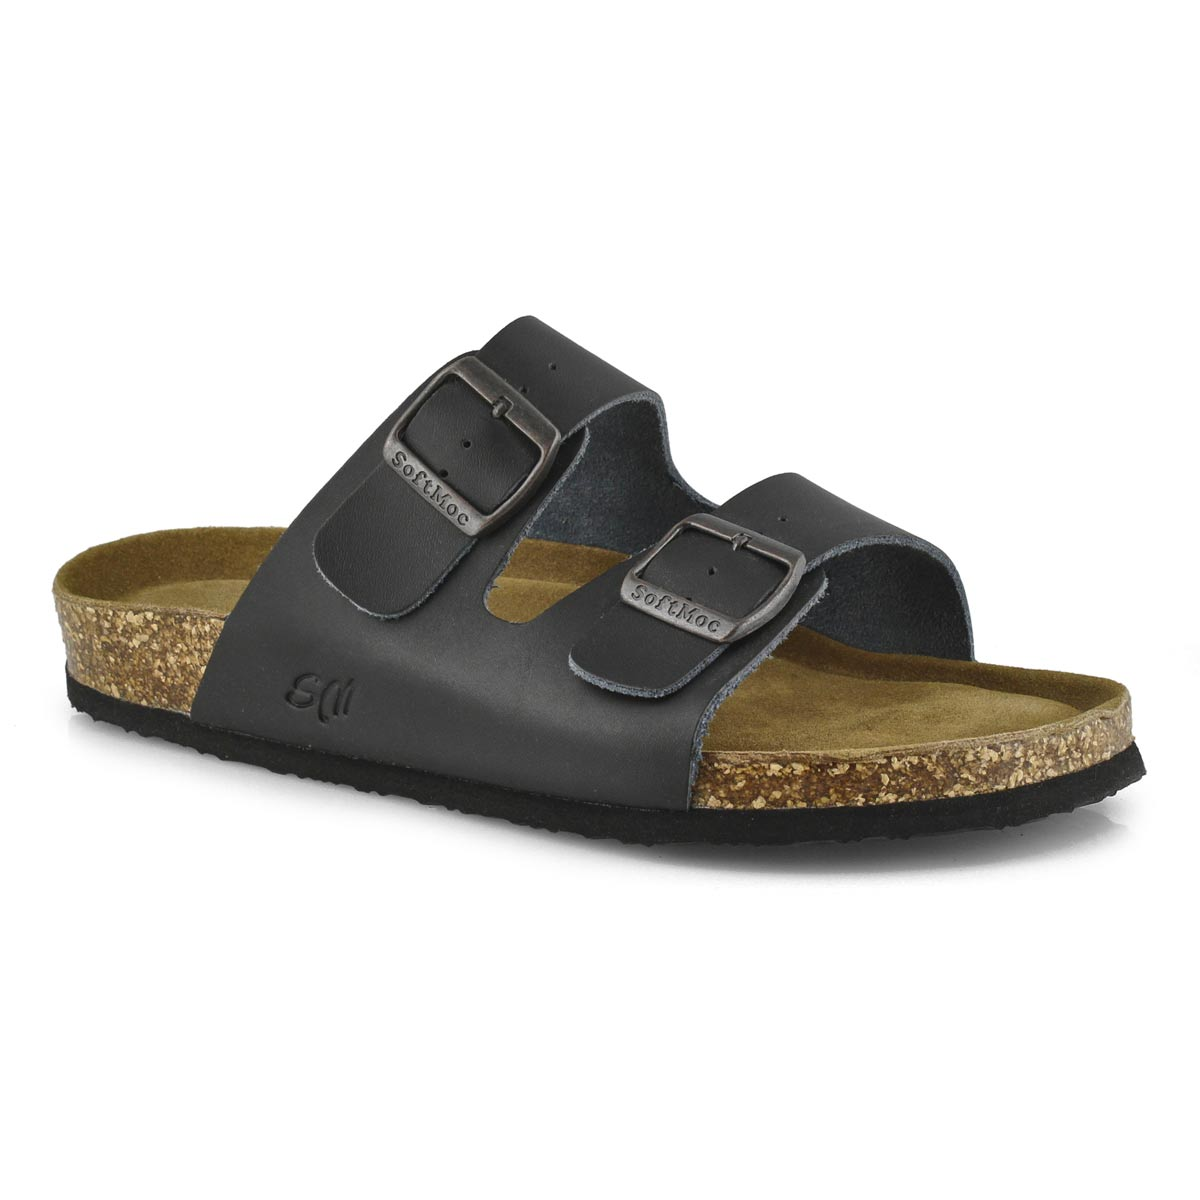 Men's RANDY 5 black memory foam slide sandals